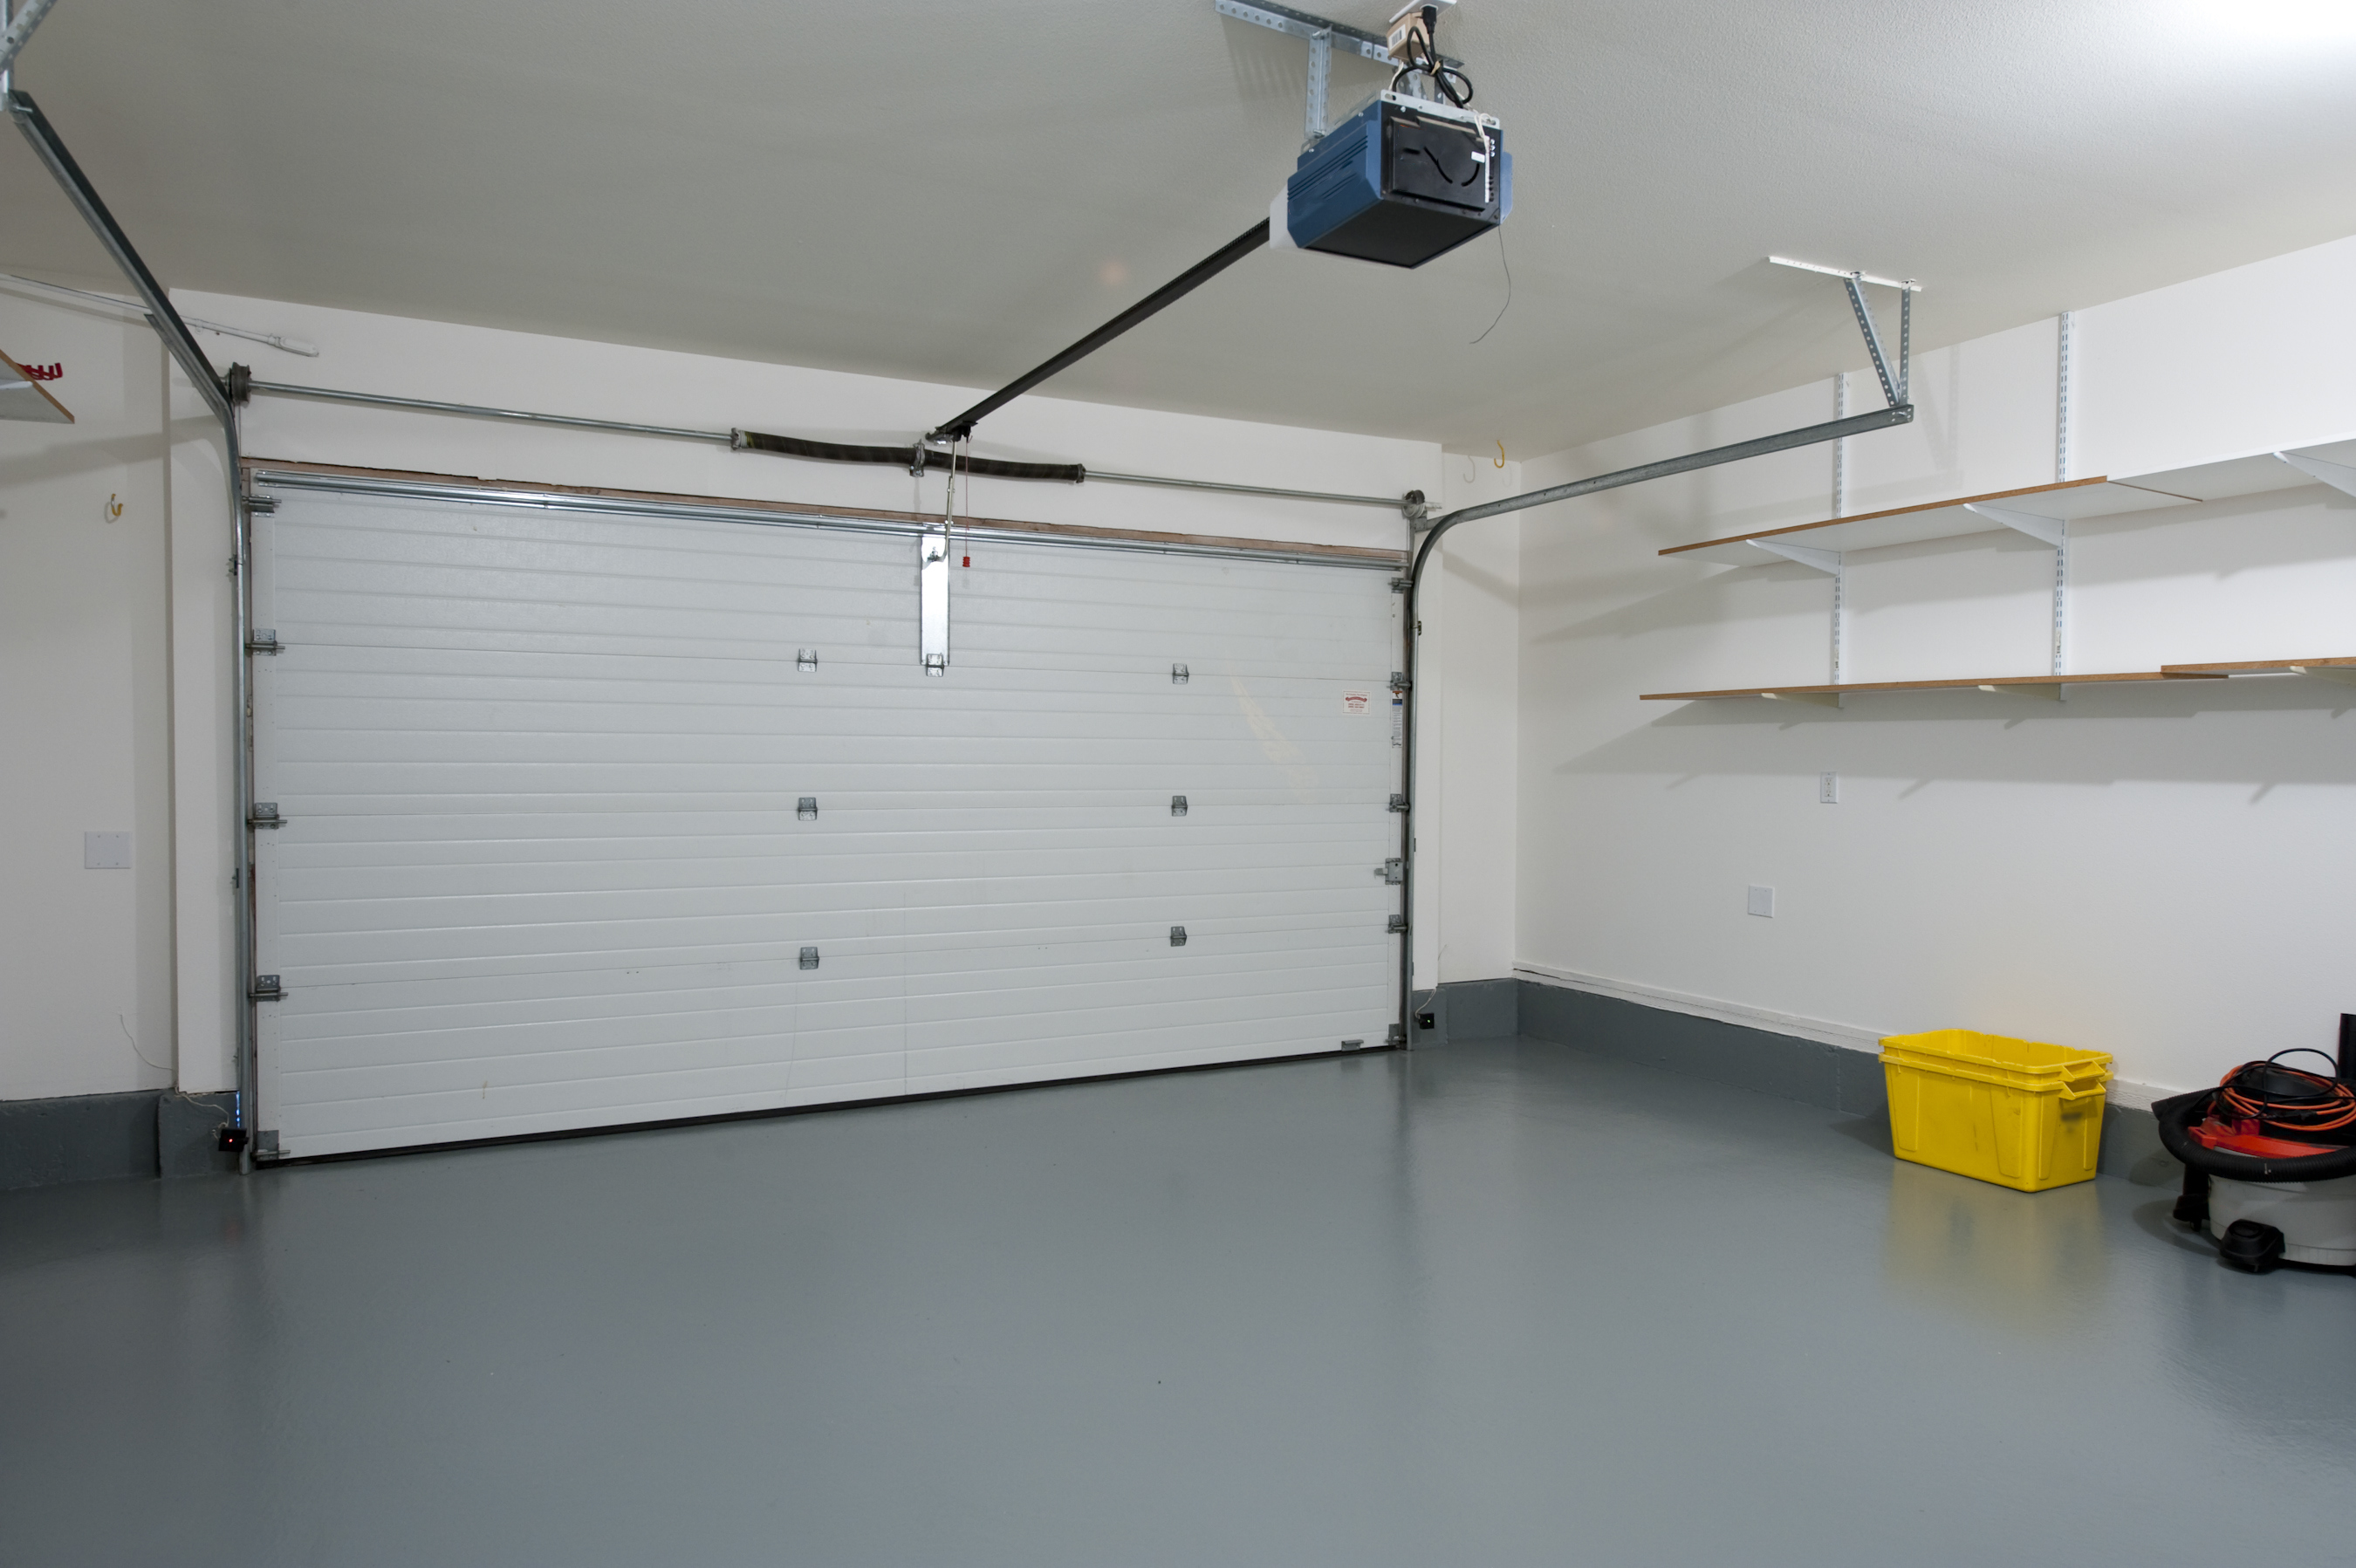 small resolution of identifying bugs in the garage